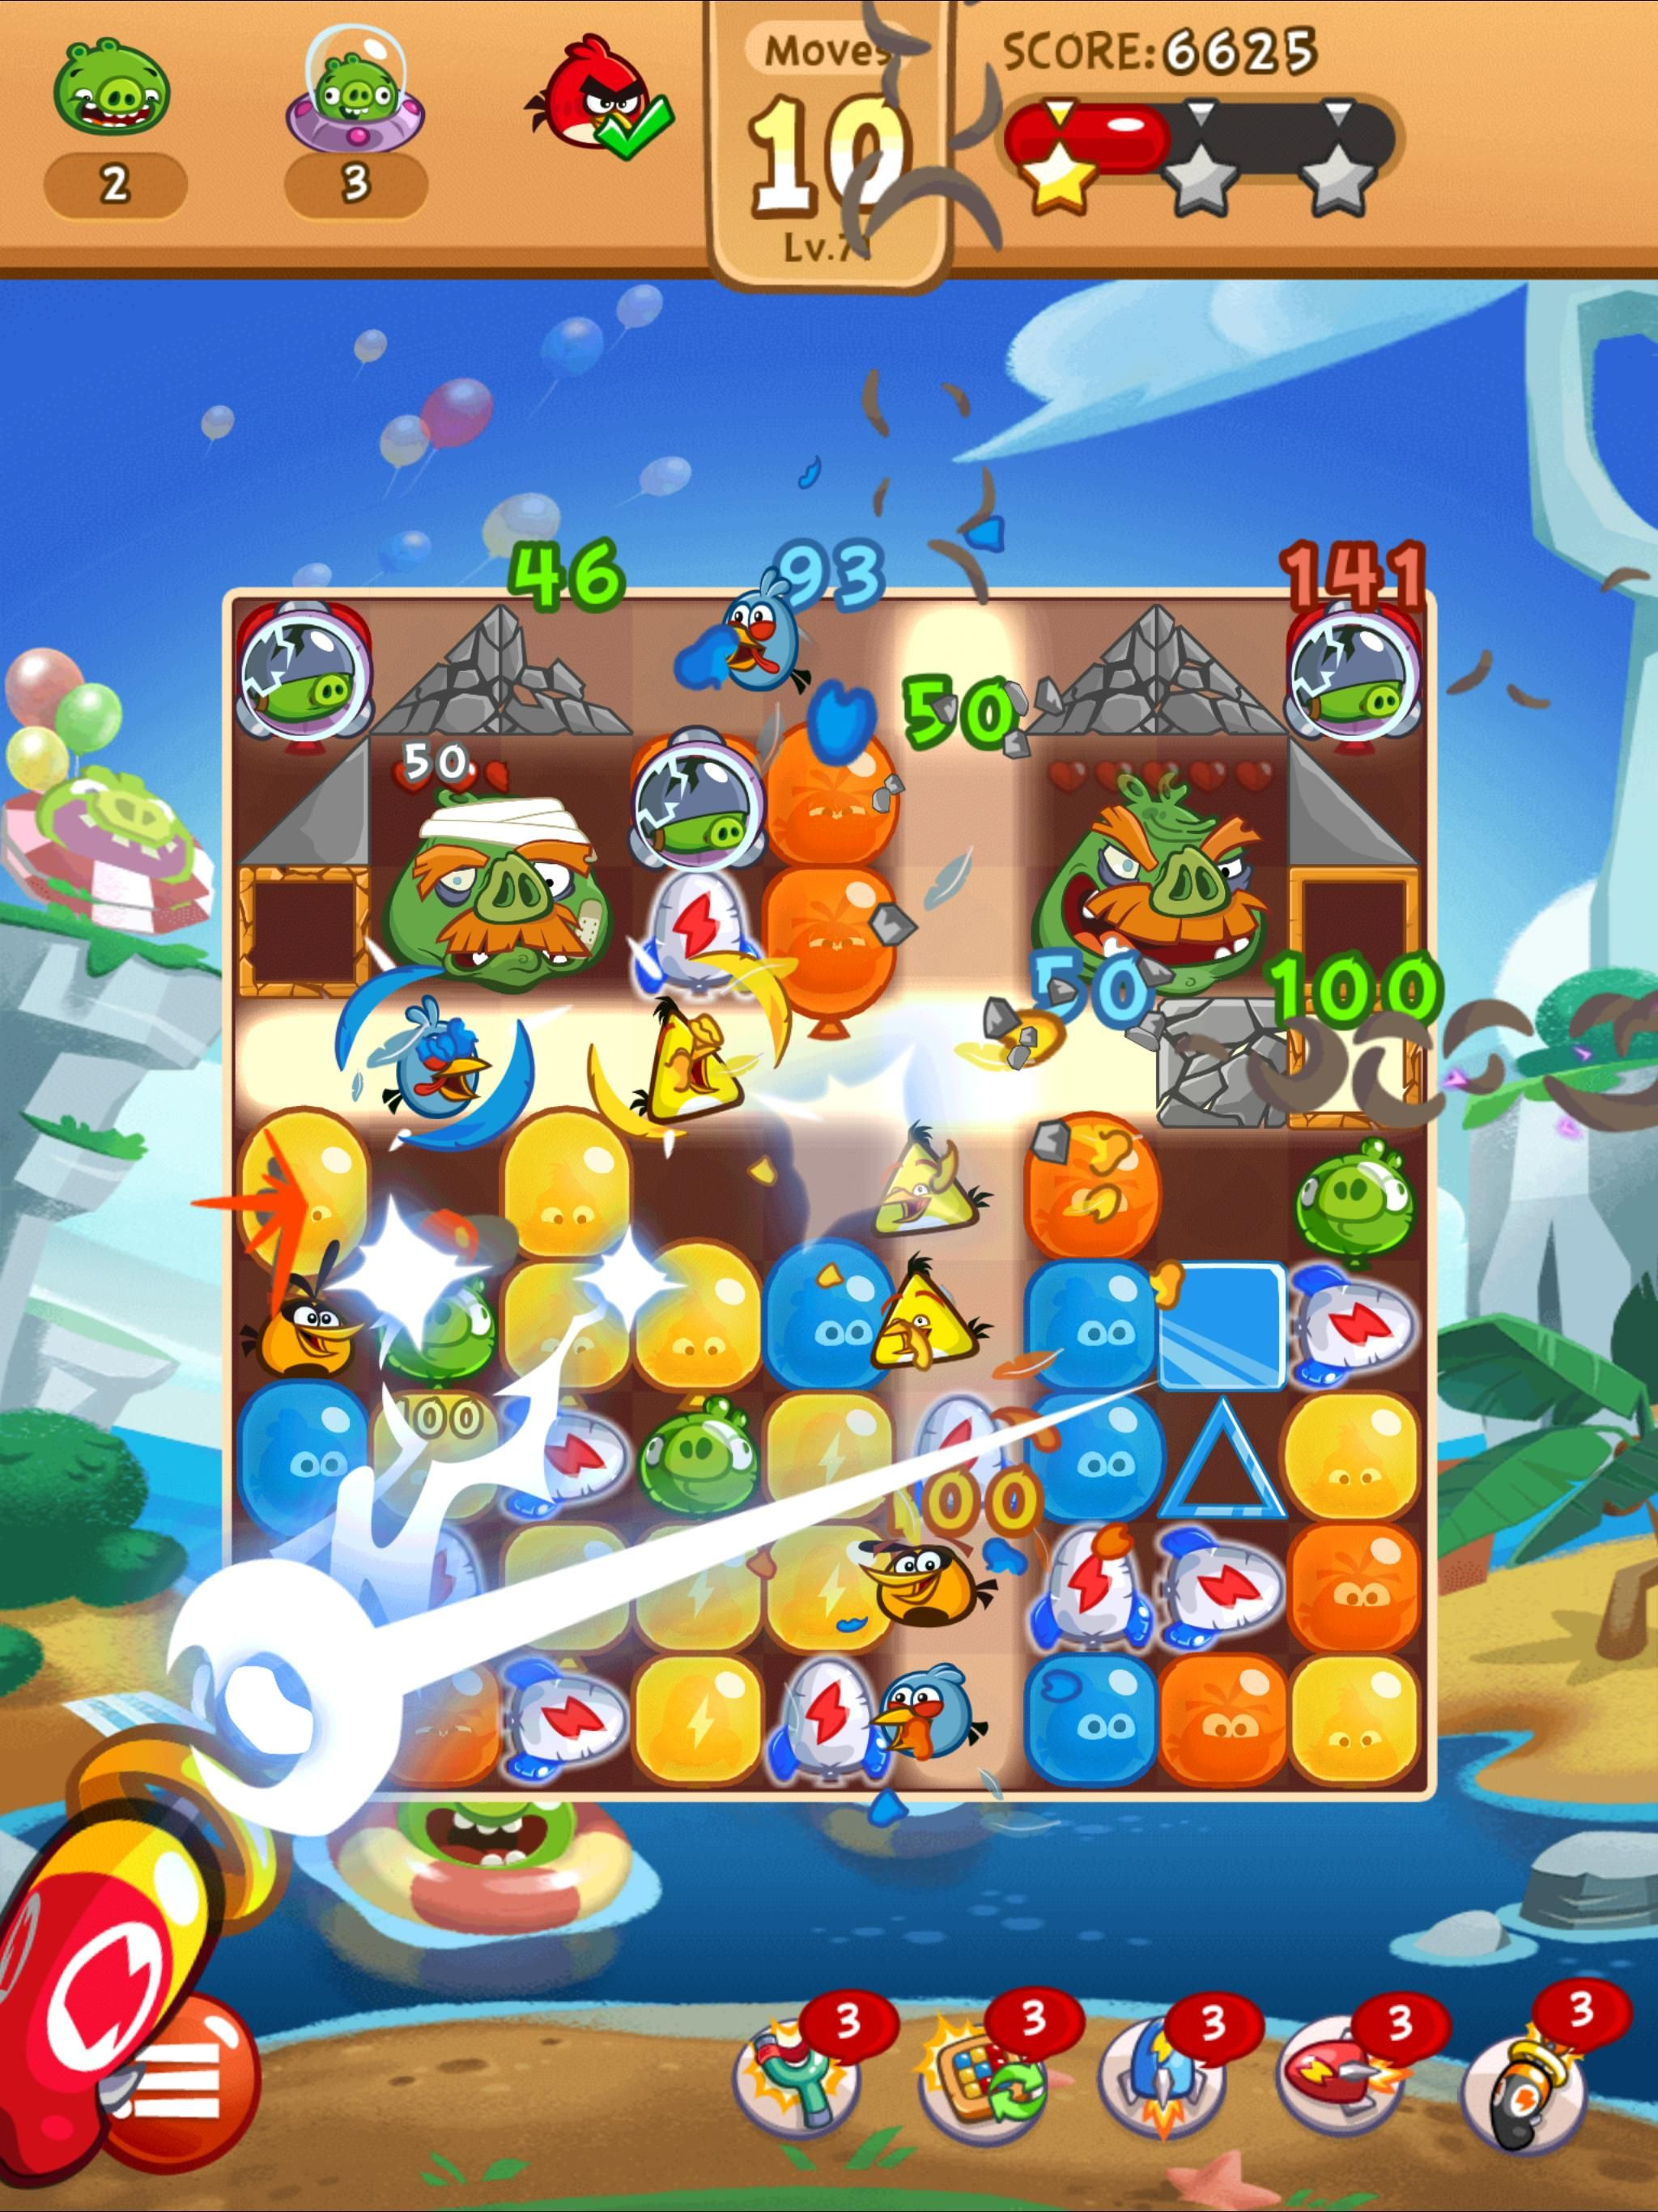 Download Angry Birds Blast APK Latest Version Free For